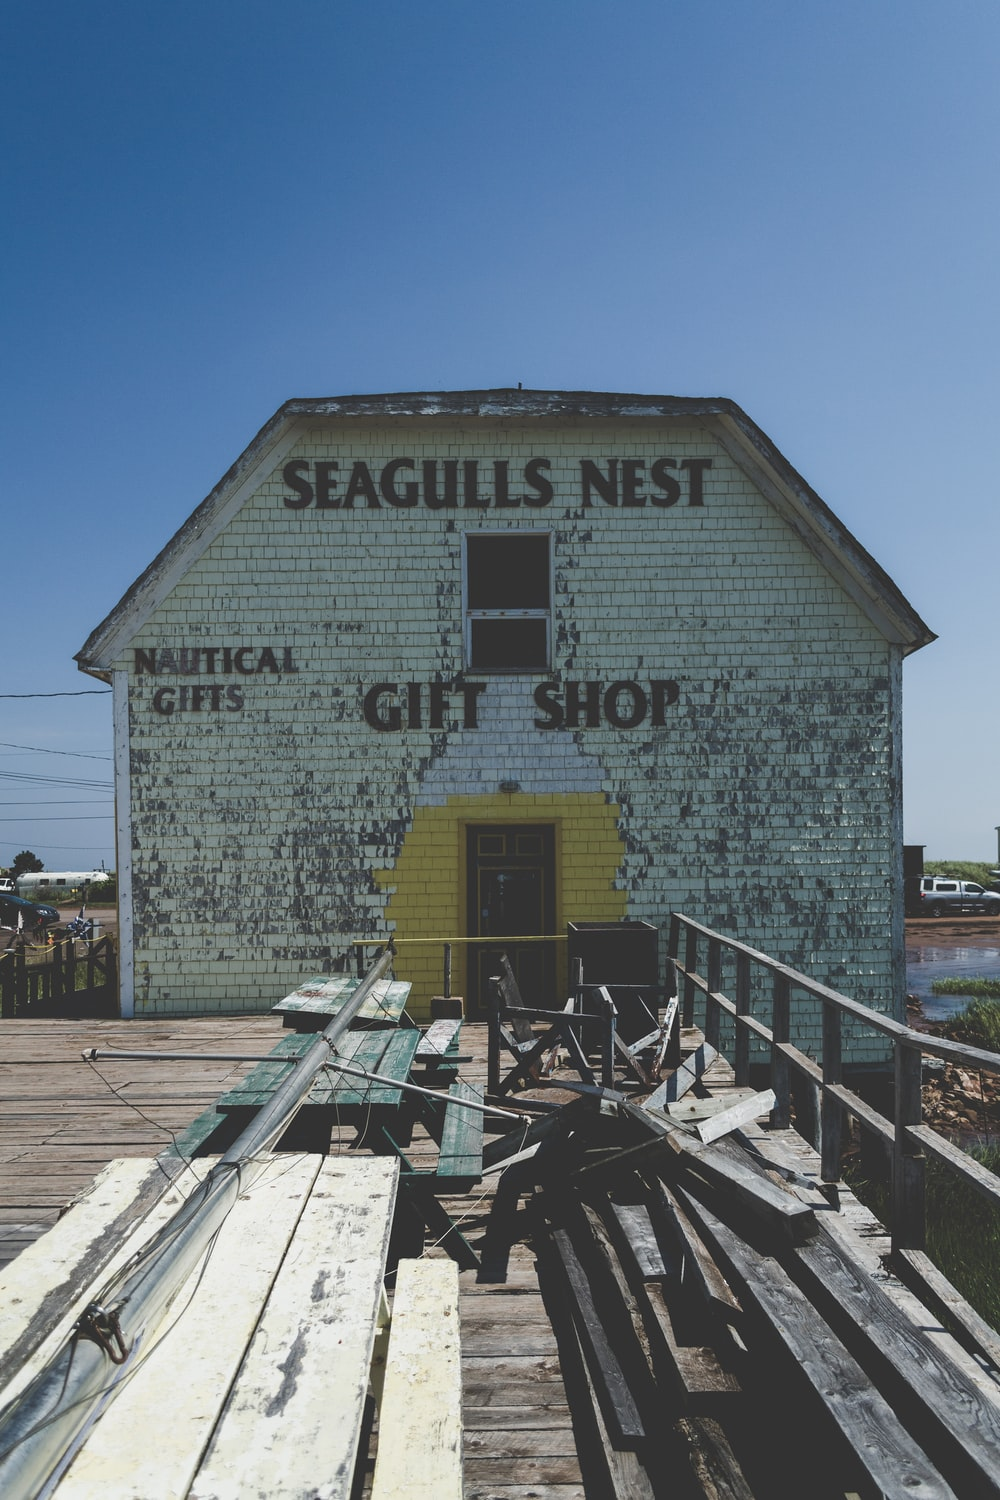 Seagulls Nest shed